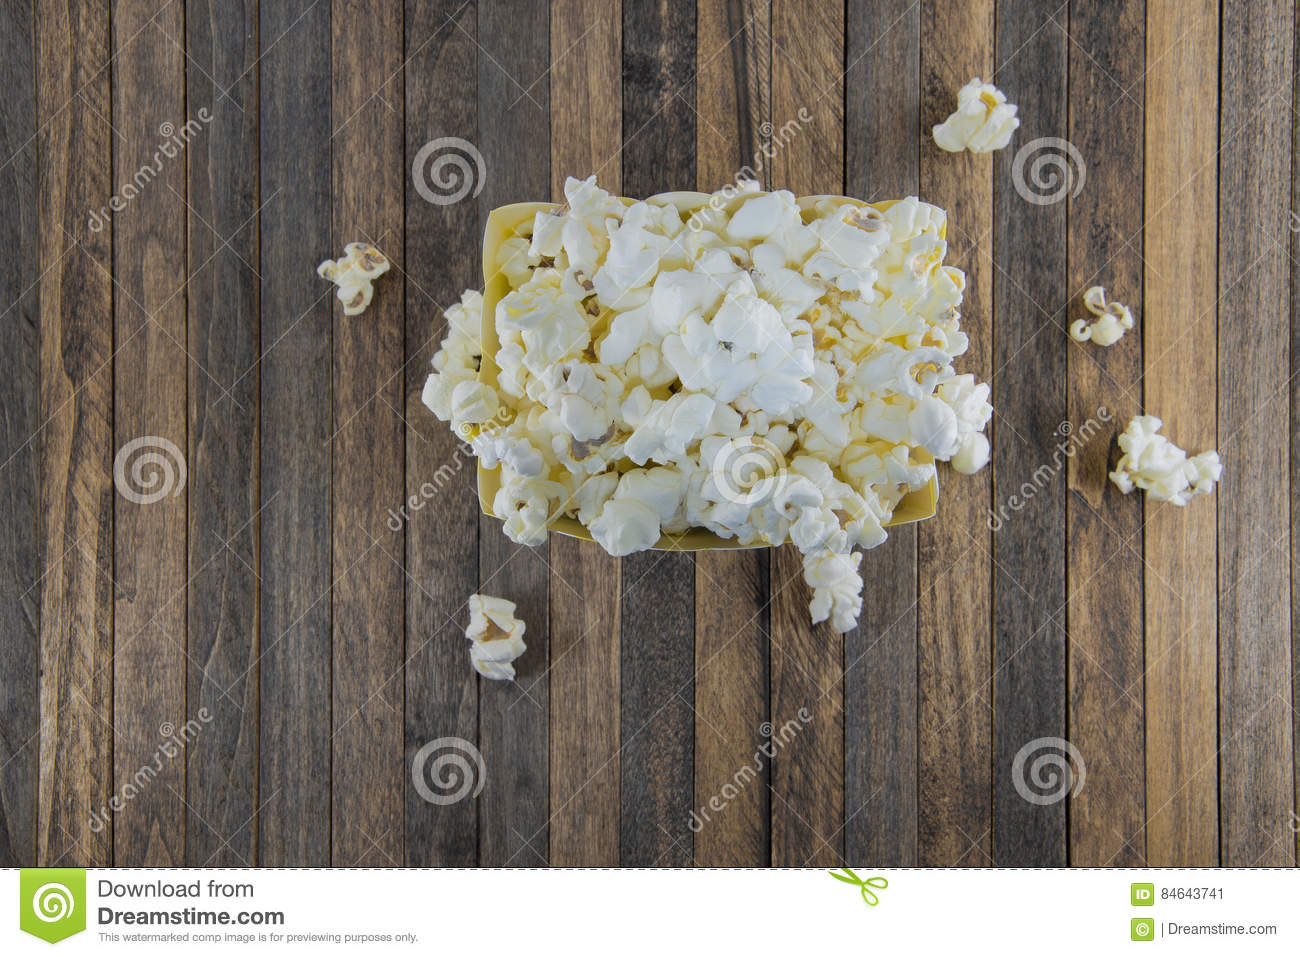 Box of popcorn on a wooden background